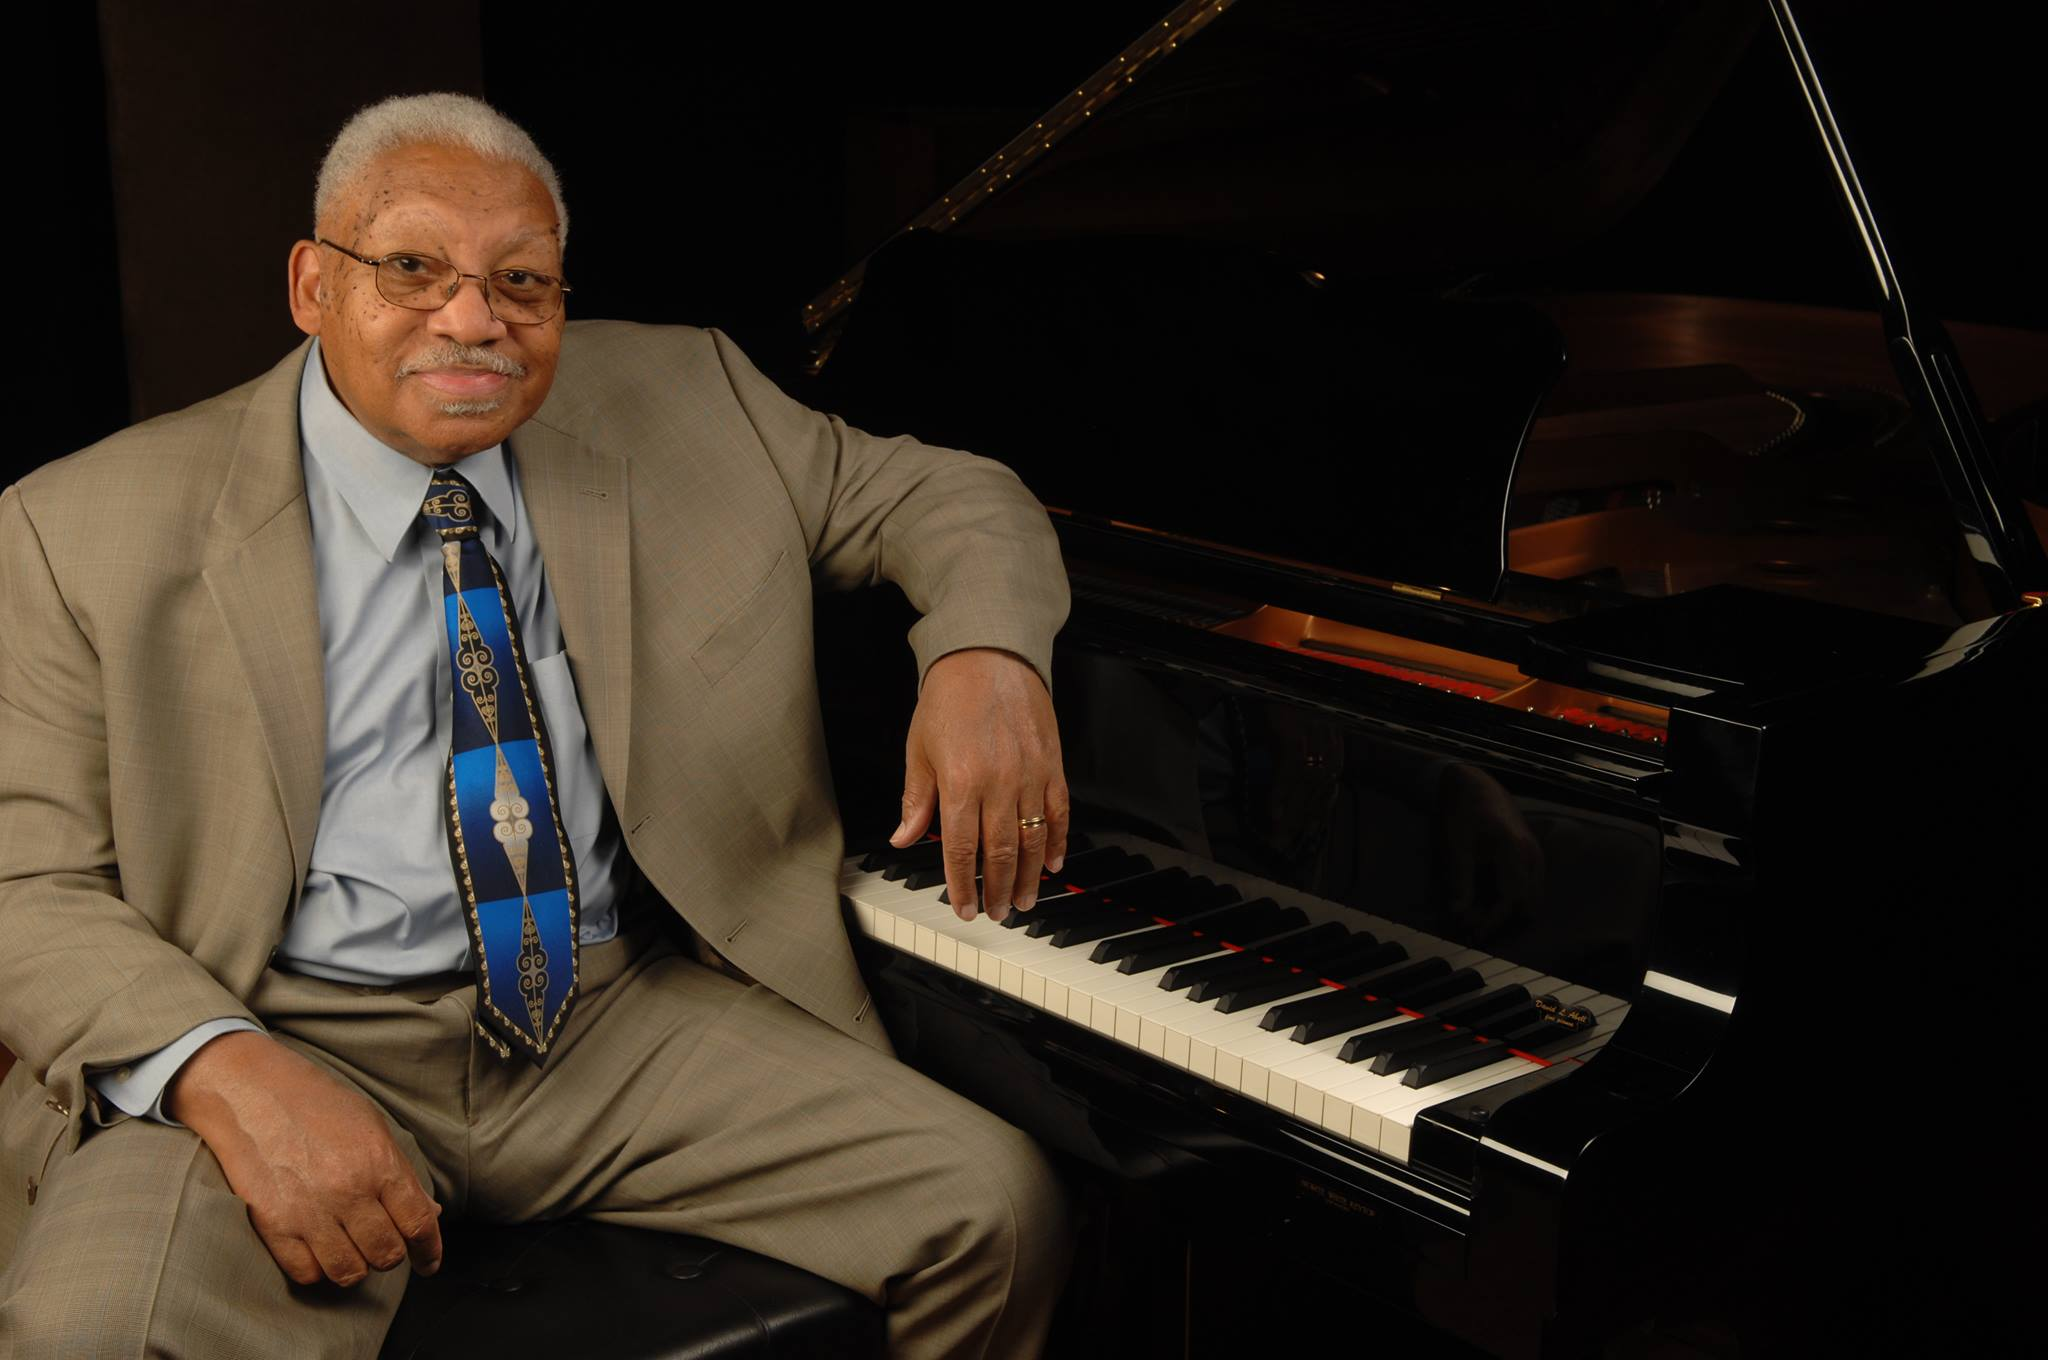 Ellis Marsalis on Piano Jazz with marian McPartland